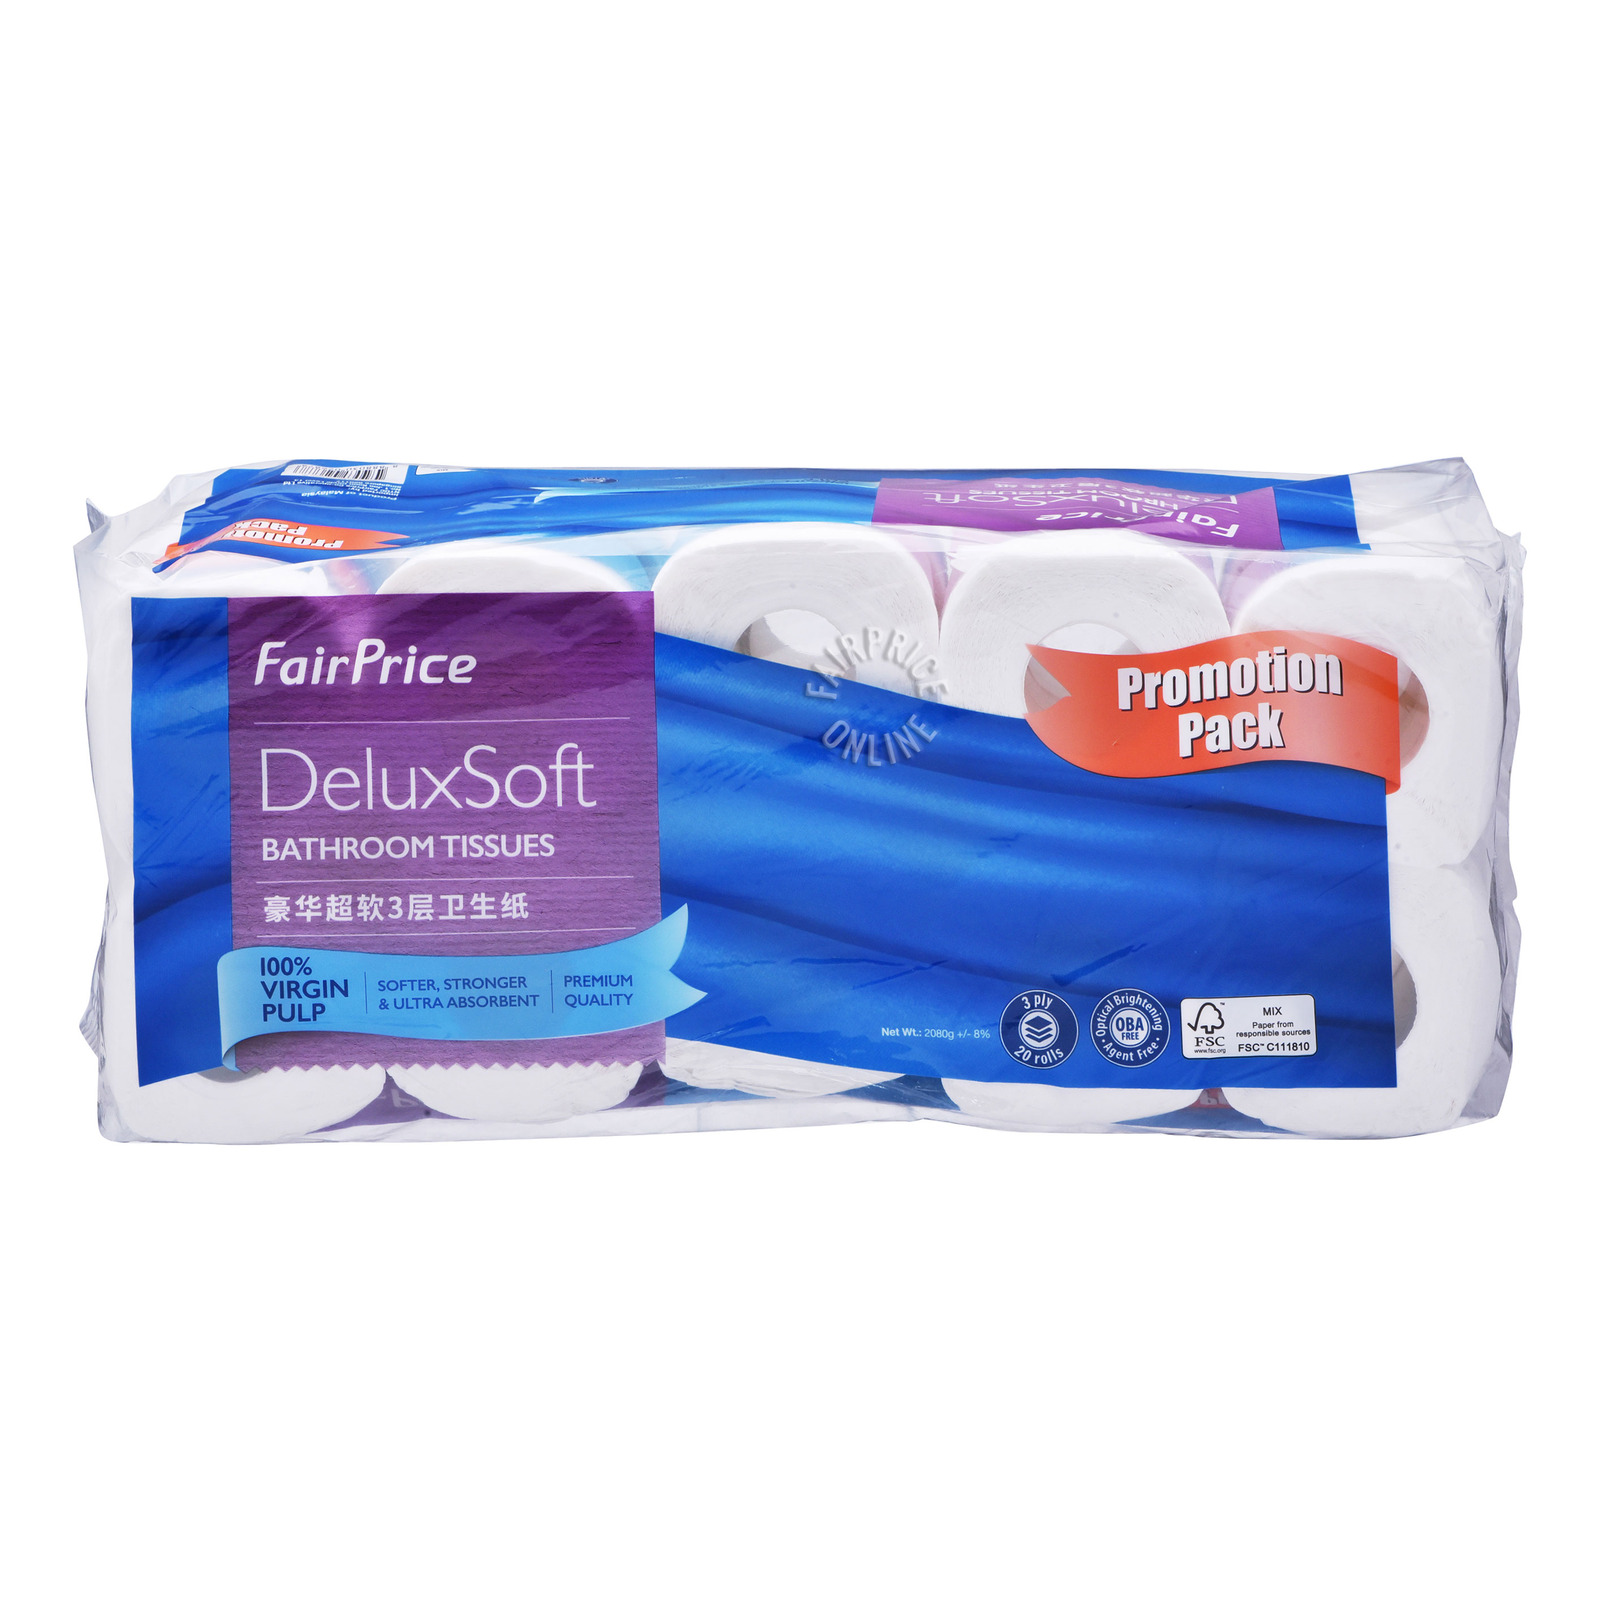 FairPrice DeluxSoft Bathroom Tissue (3 Ply)